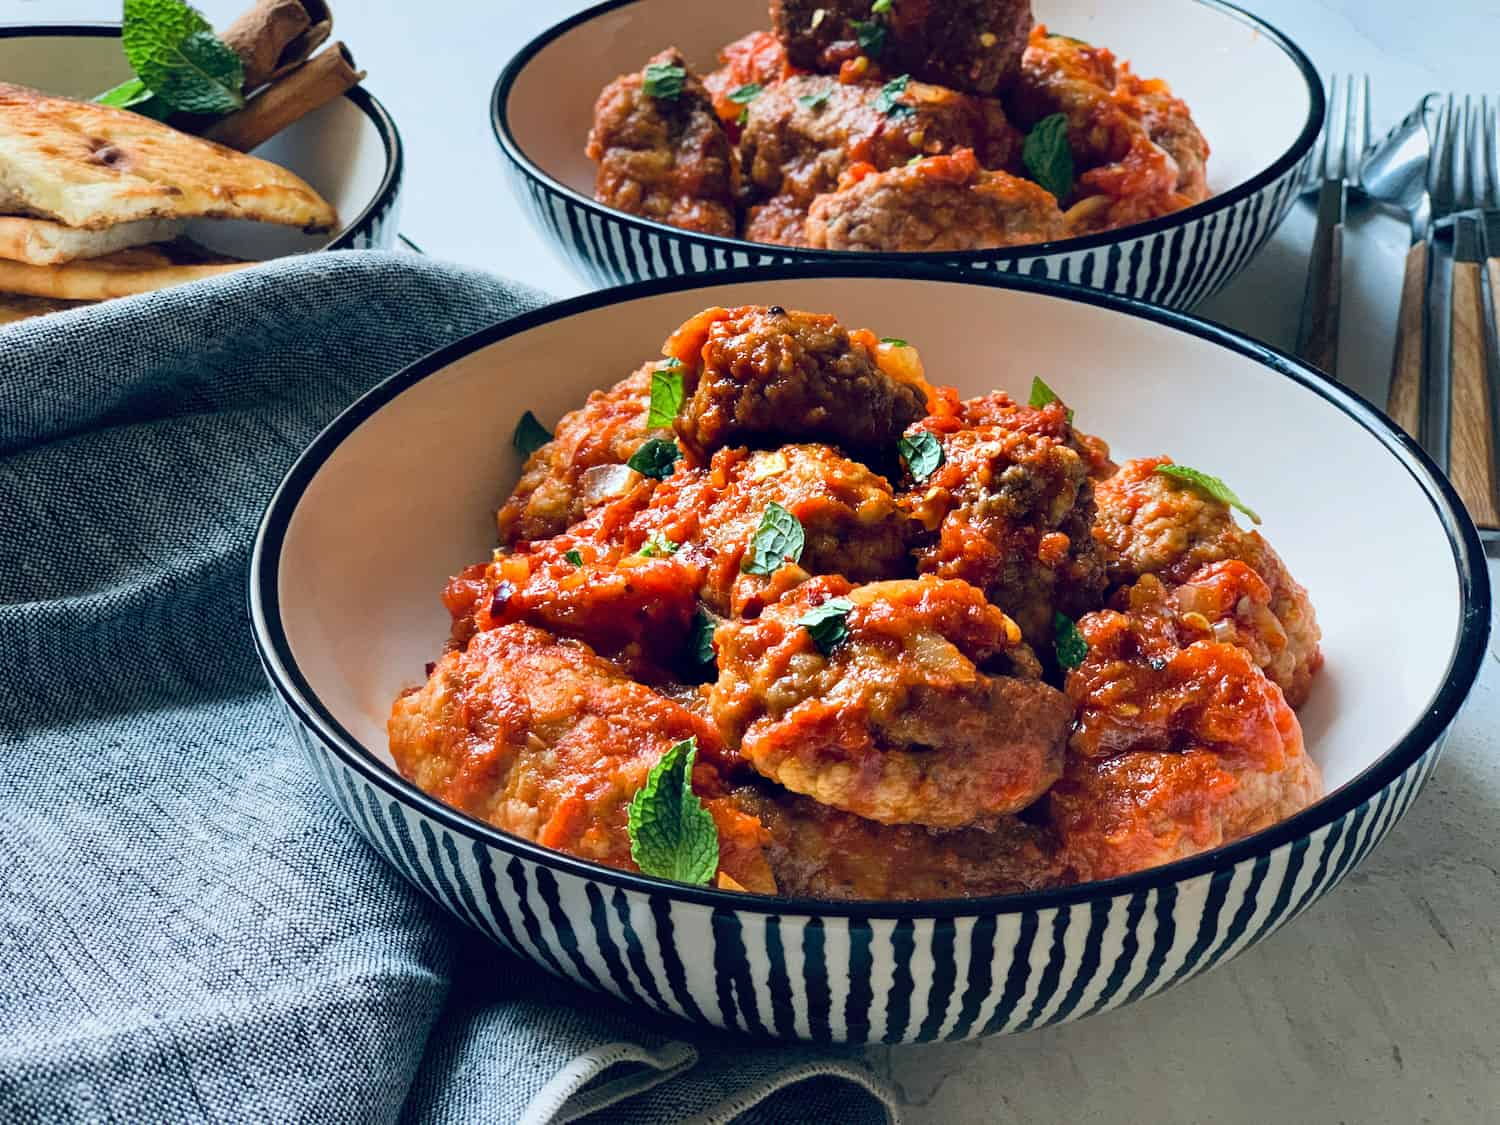 Two plates with cumin meatballs in red sauce-greek soutzoukakia and another plate in the back with cut up pita breads.